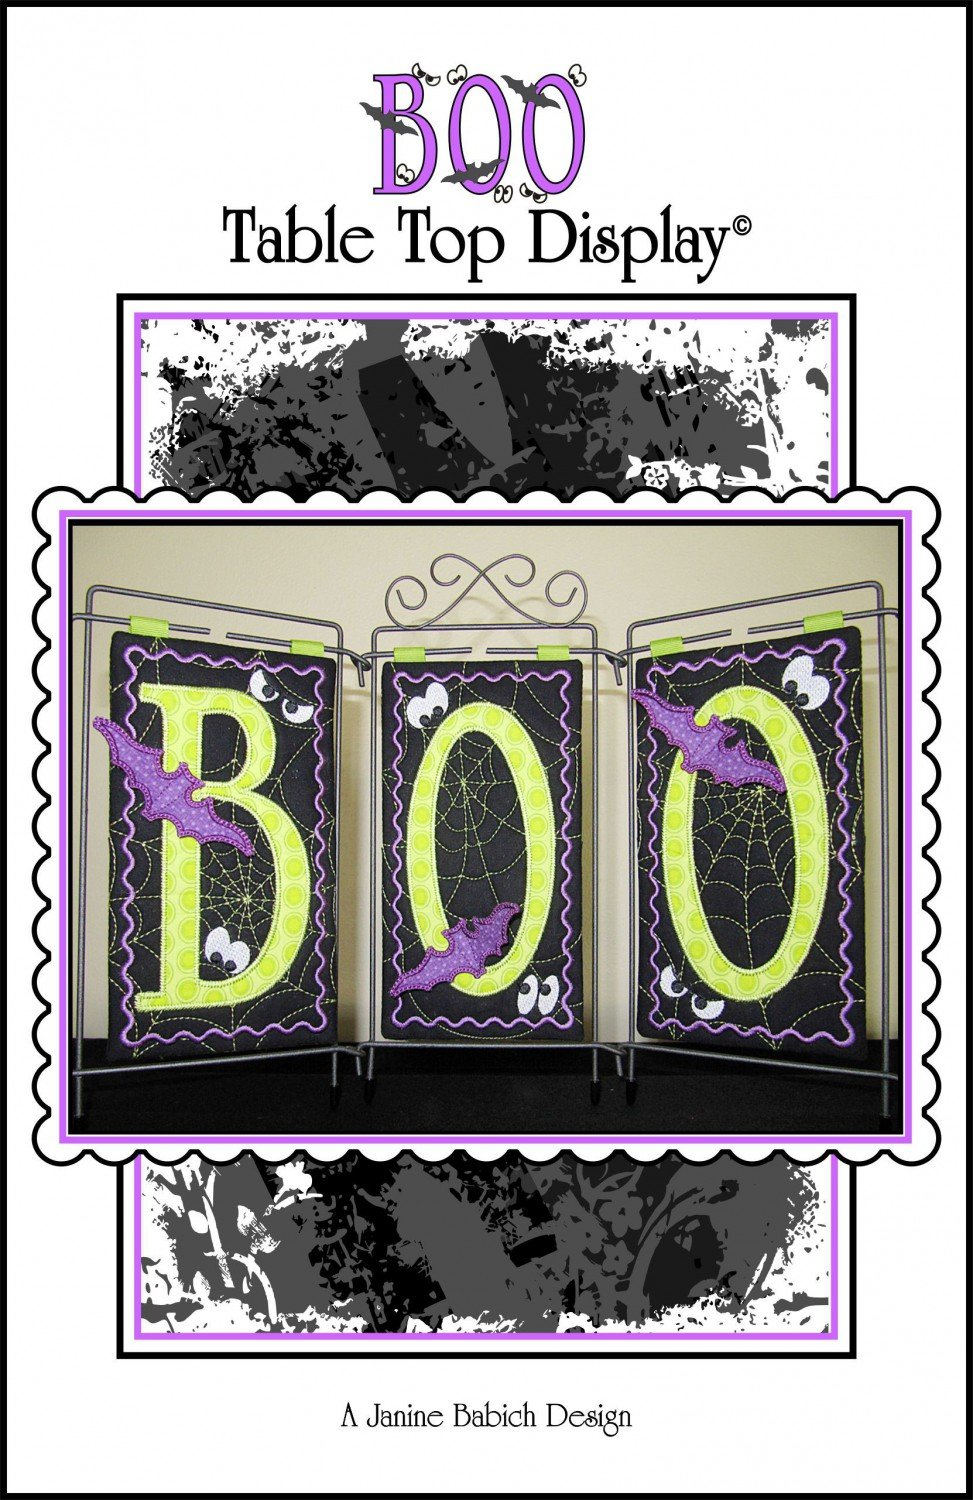 BOO Table Top Display JBDBOO EMB CD Pattern